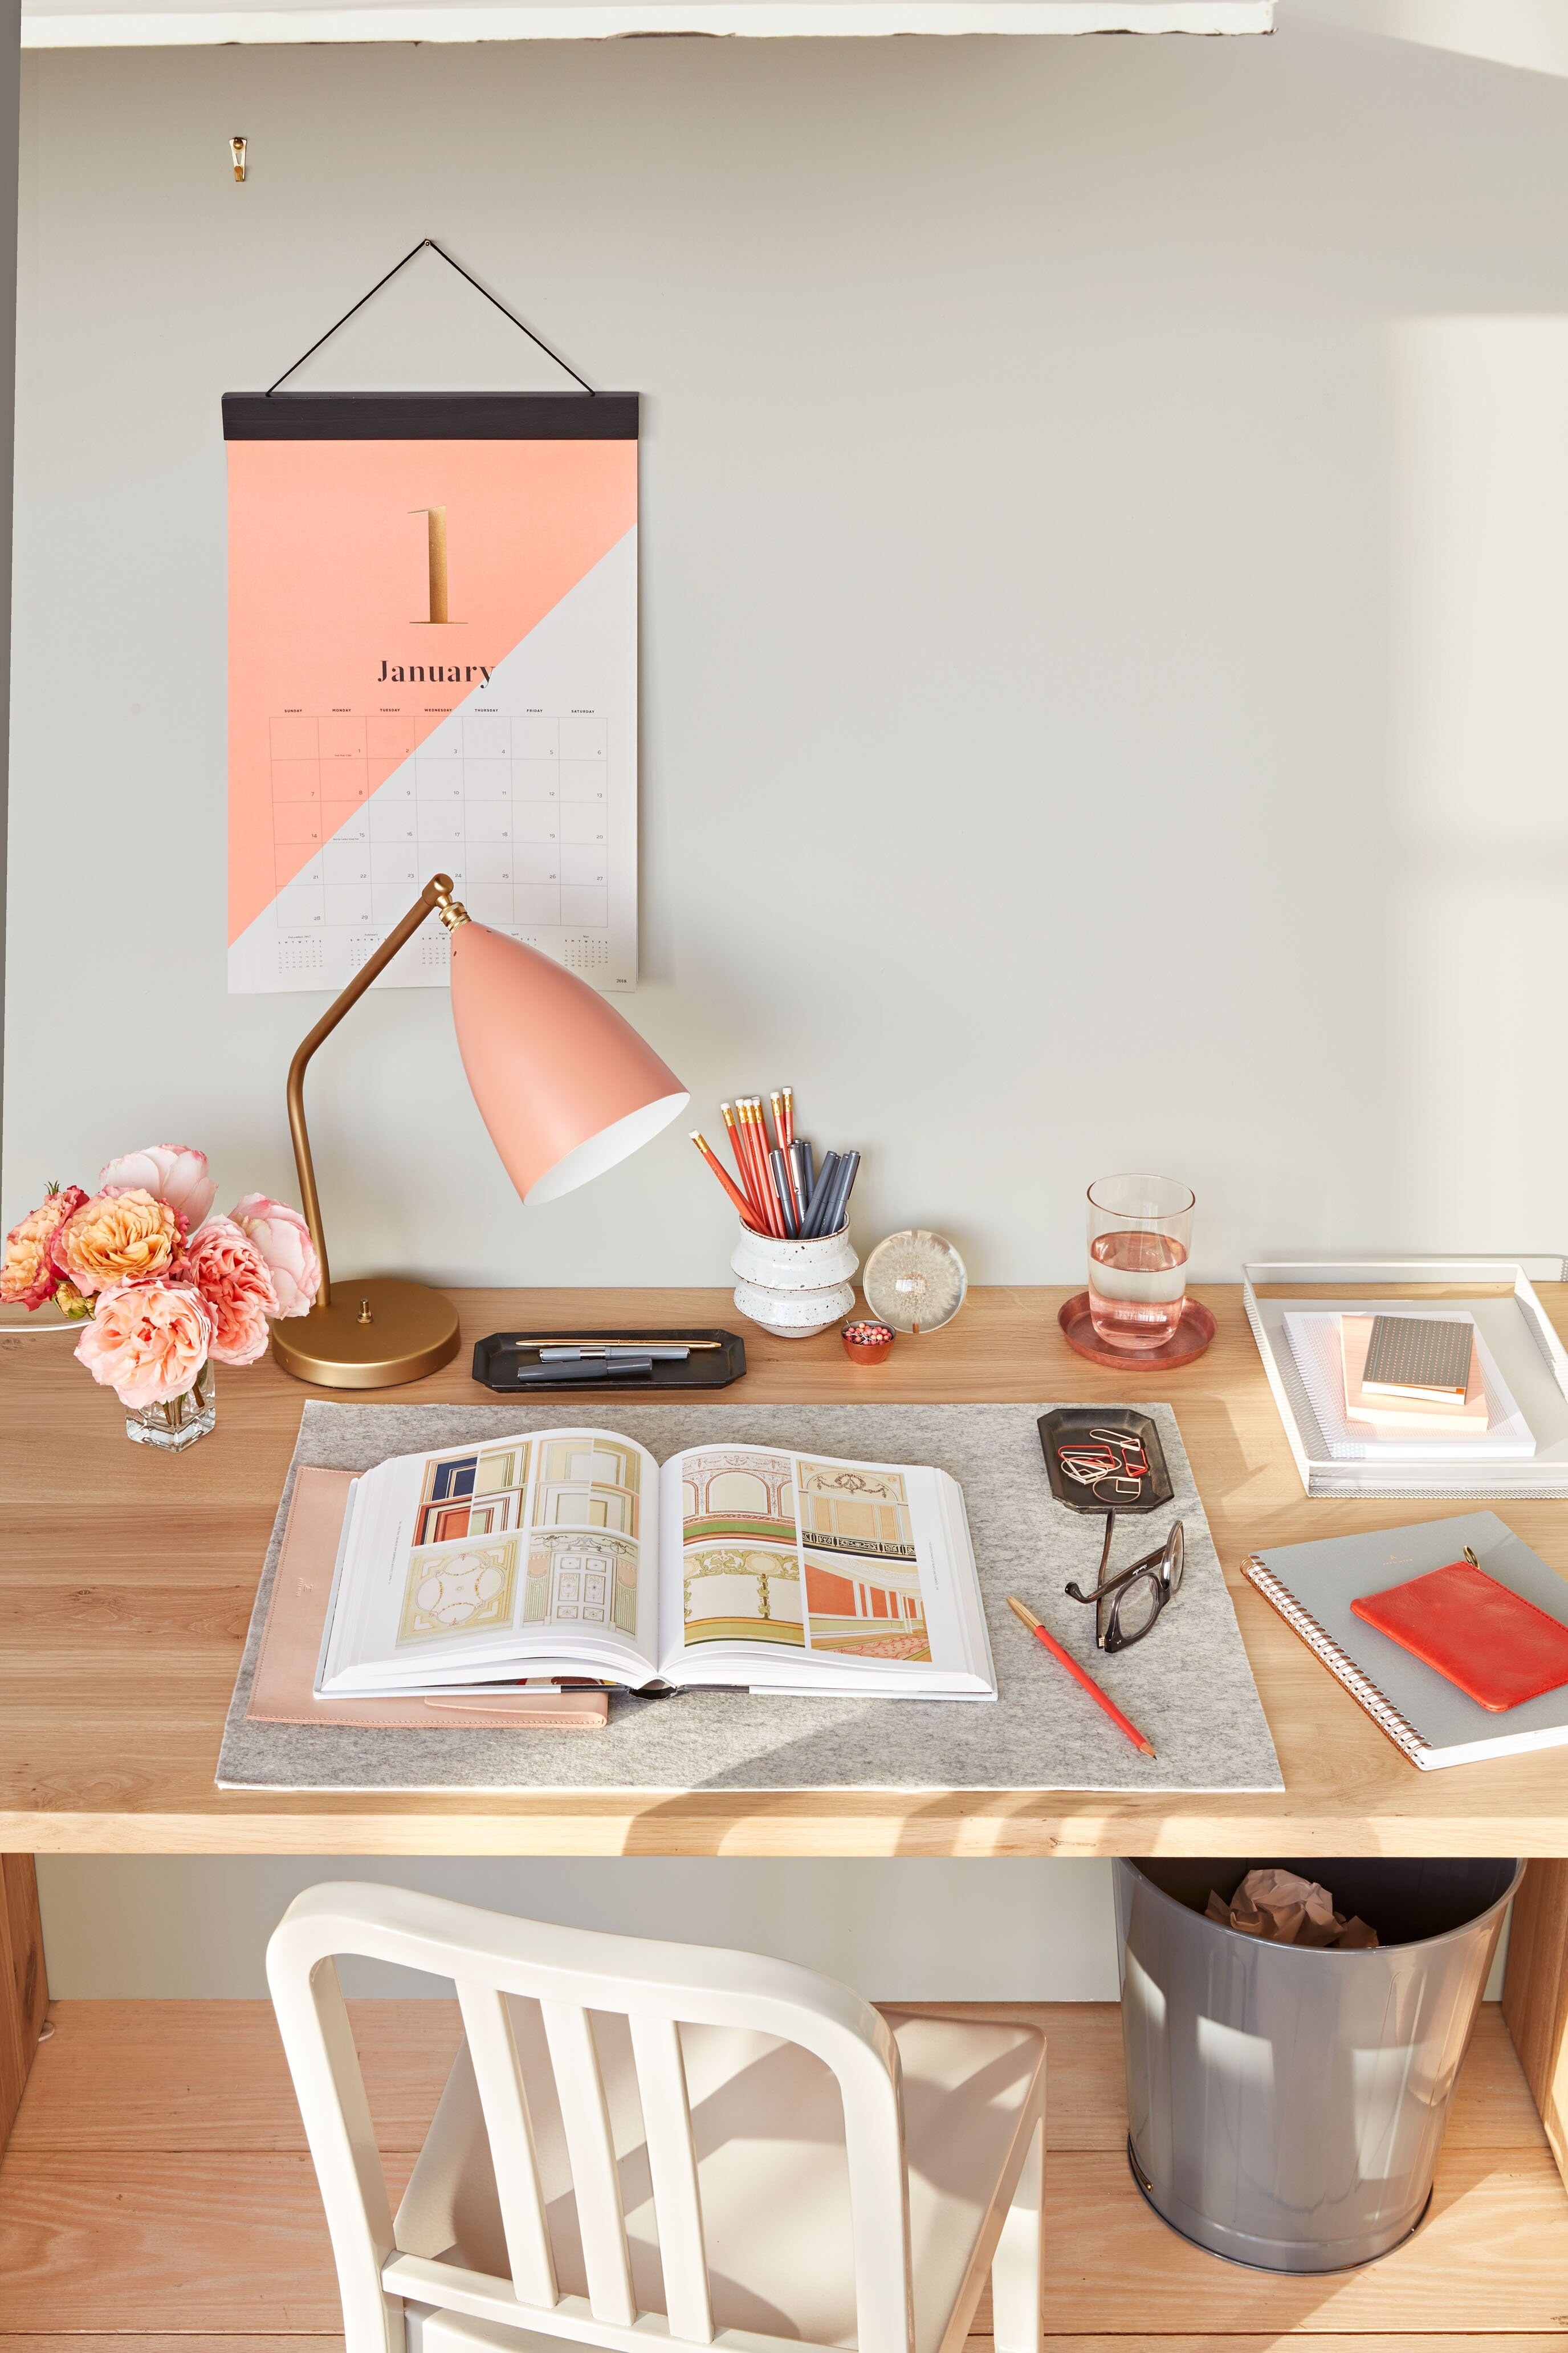 10 Small Space Decorating Ideas Perfect for Dorm Rooms ...